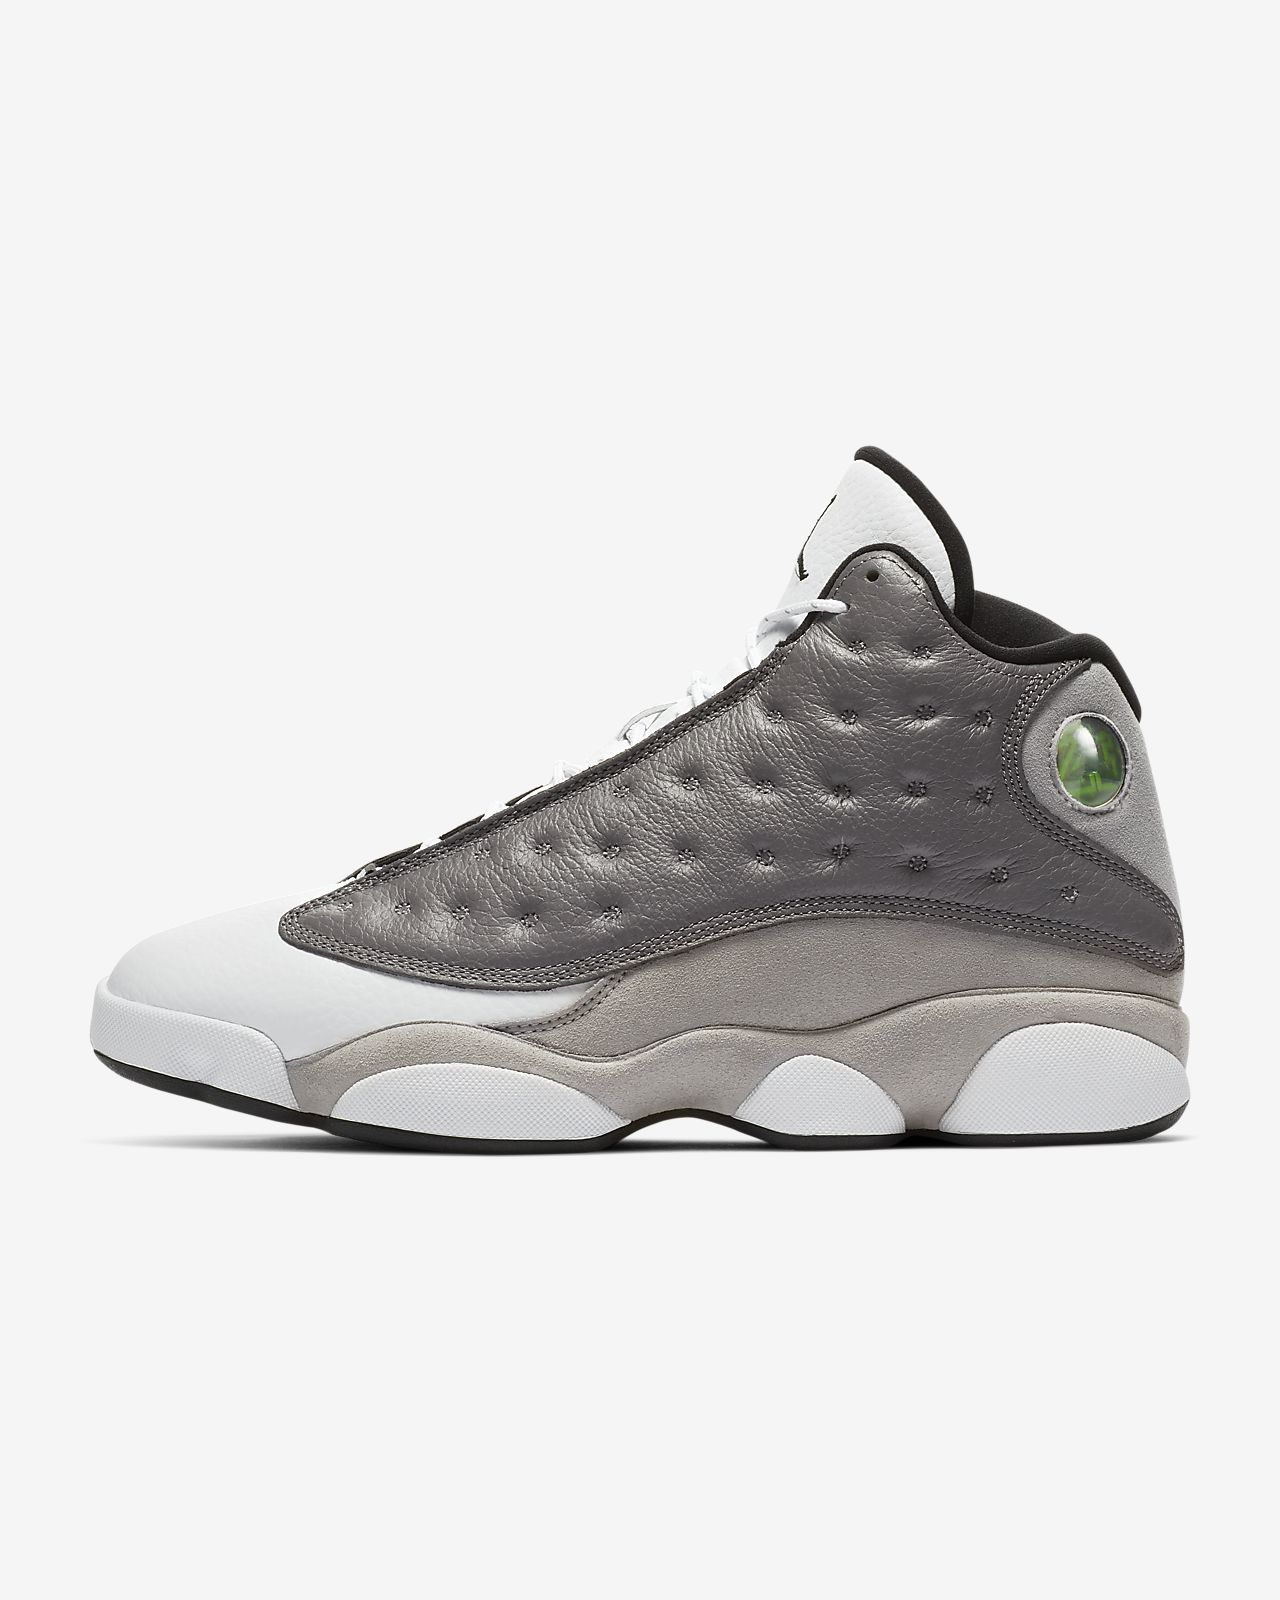 91360ce021 Air Jordan 13 Retro Men's Shoe. Nike.com IN